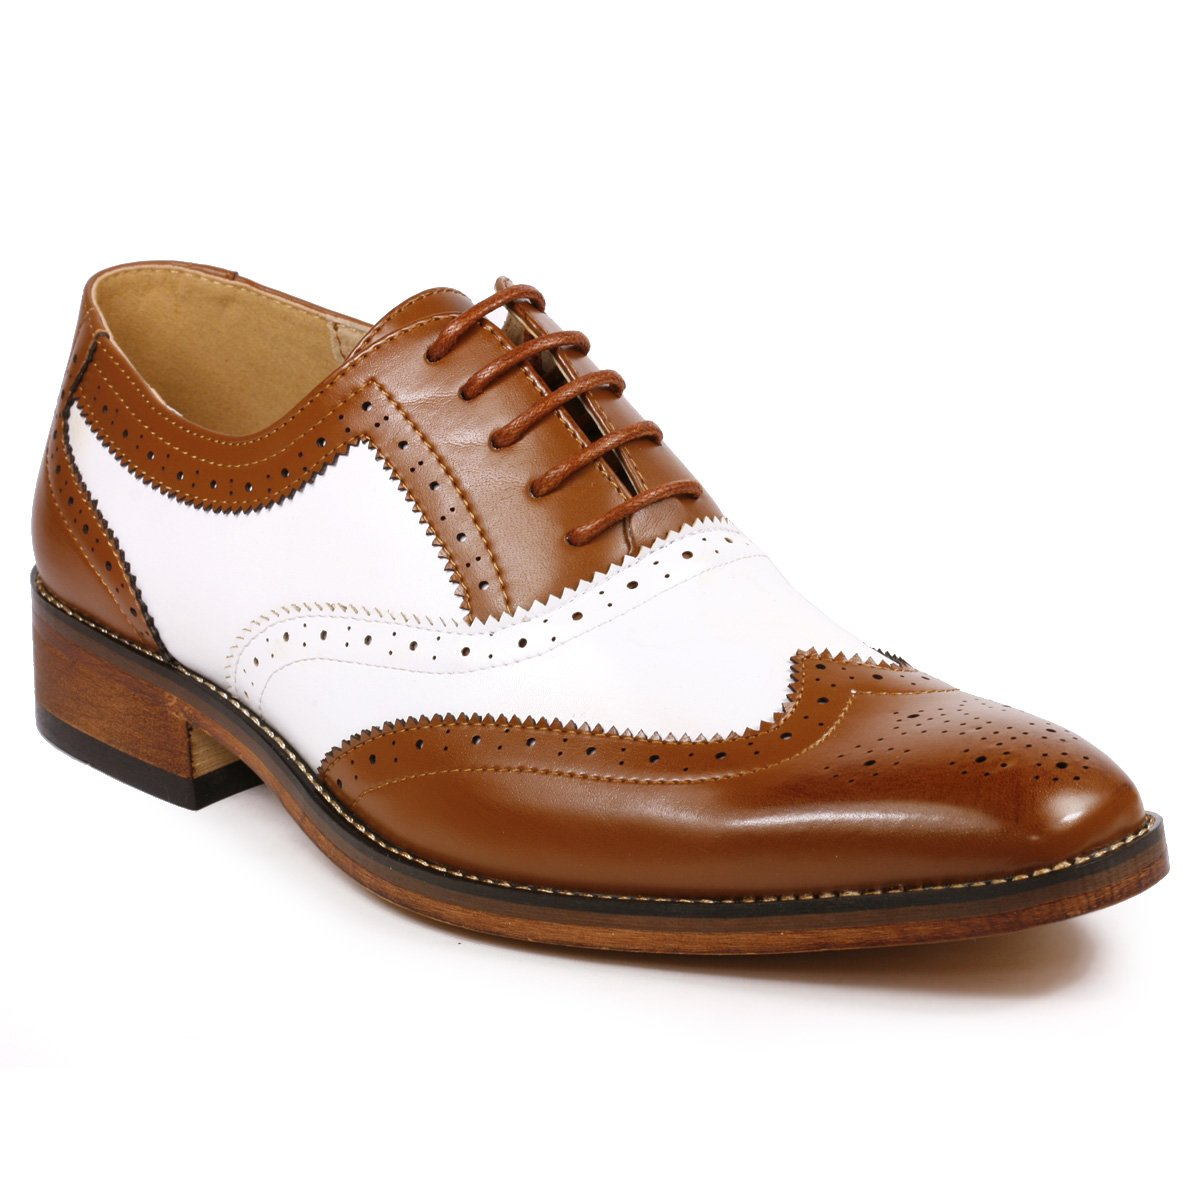 1940s UK and Europe Men's Clothing – WW2, Swing Dance, Goodwin Mens Two Tone Perforated Wing Tip Lace Up Oxford Dress Shoes Metrocharm MC118  £47.49 AT vintagedancer.com